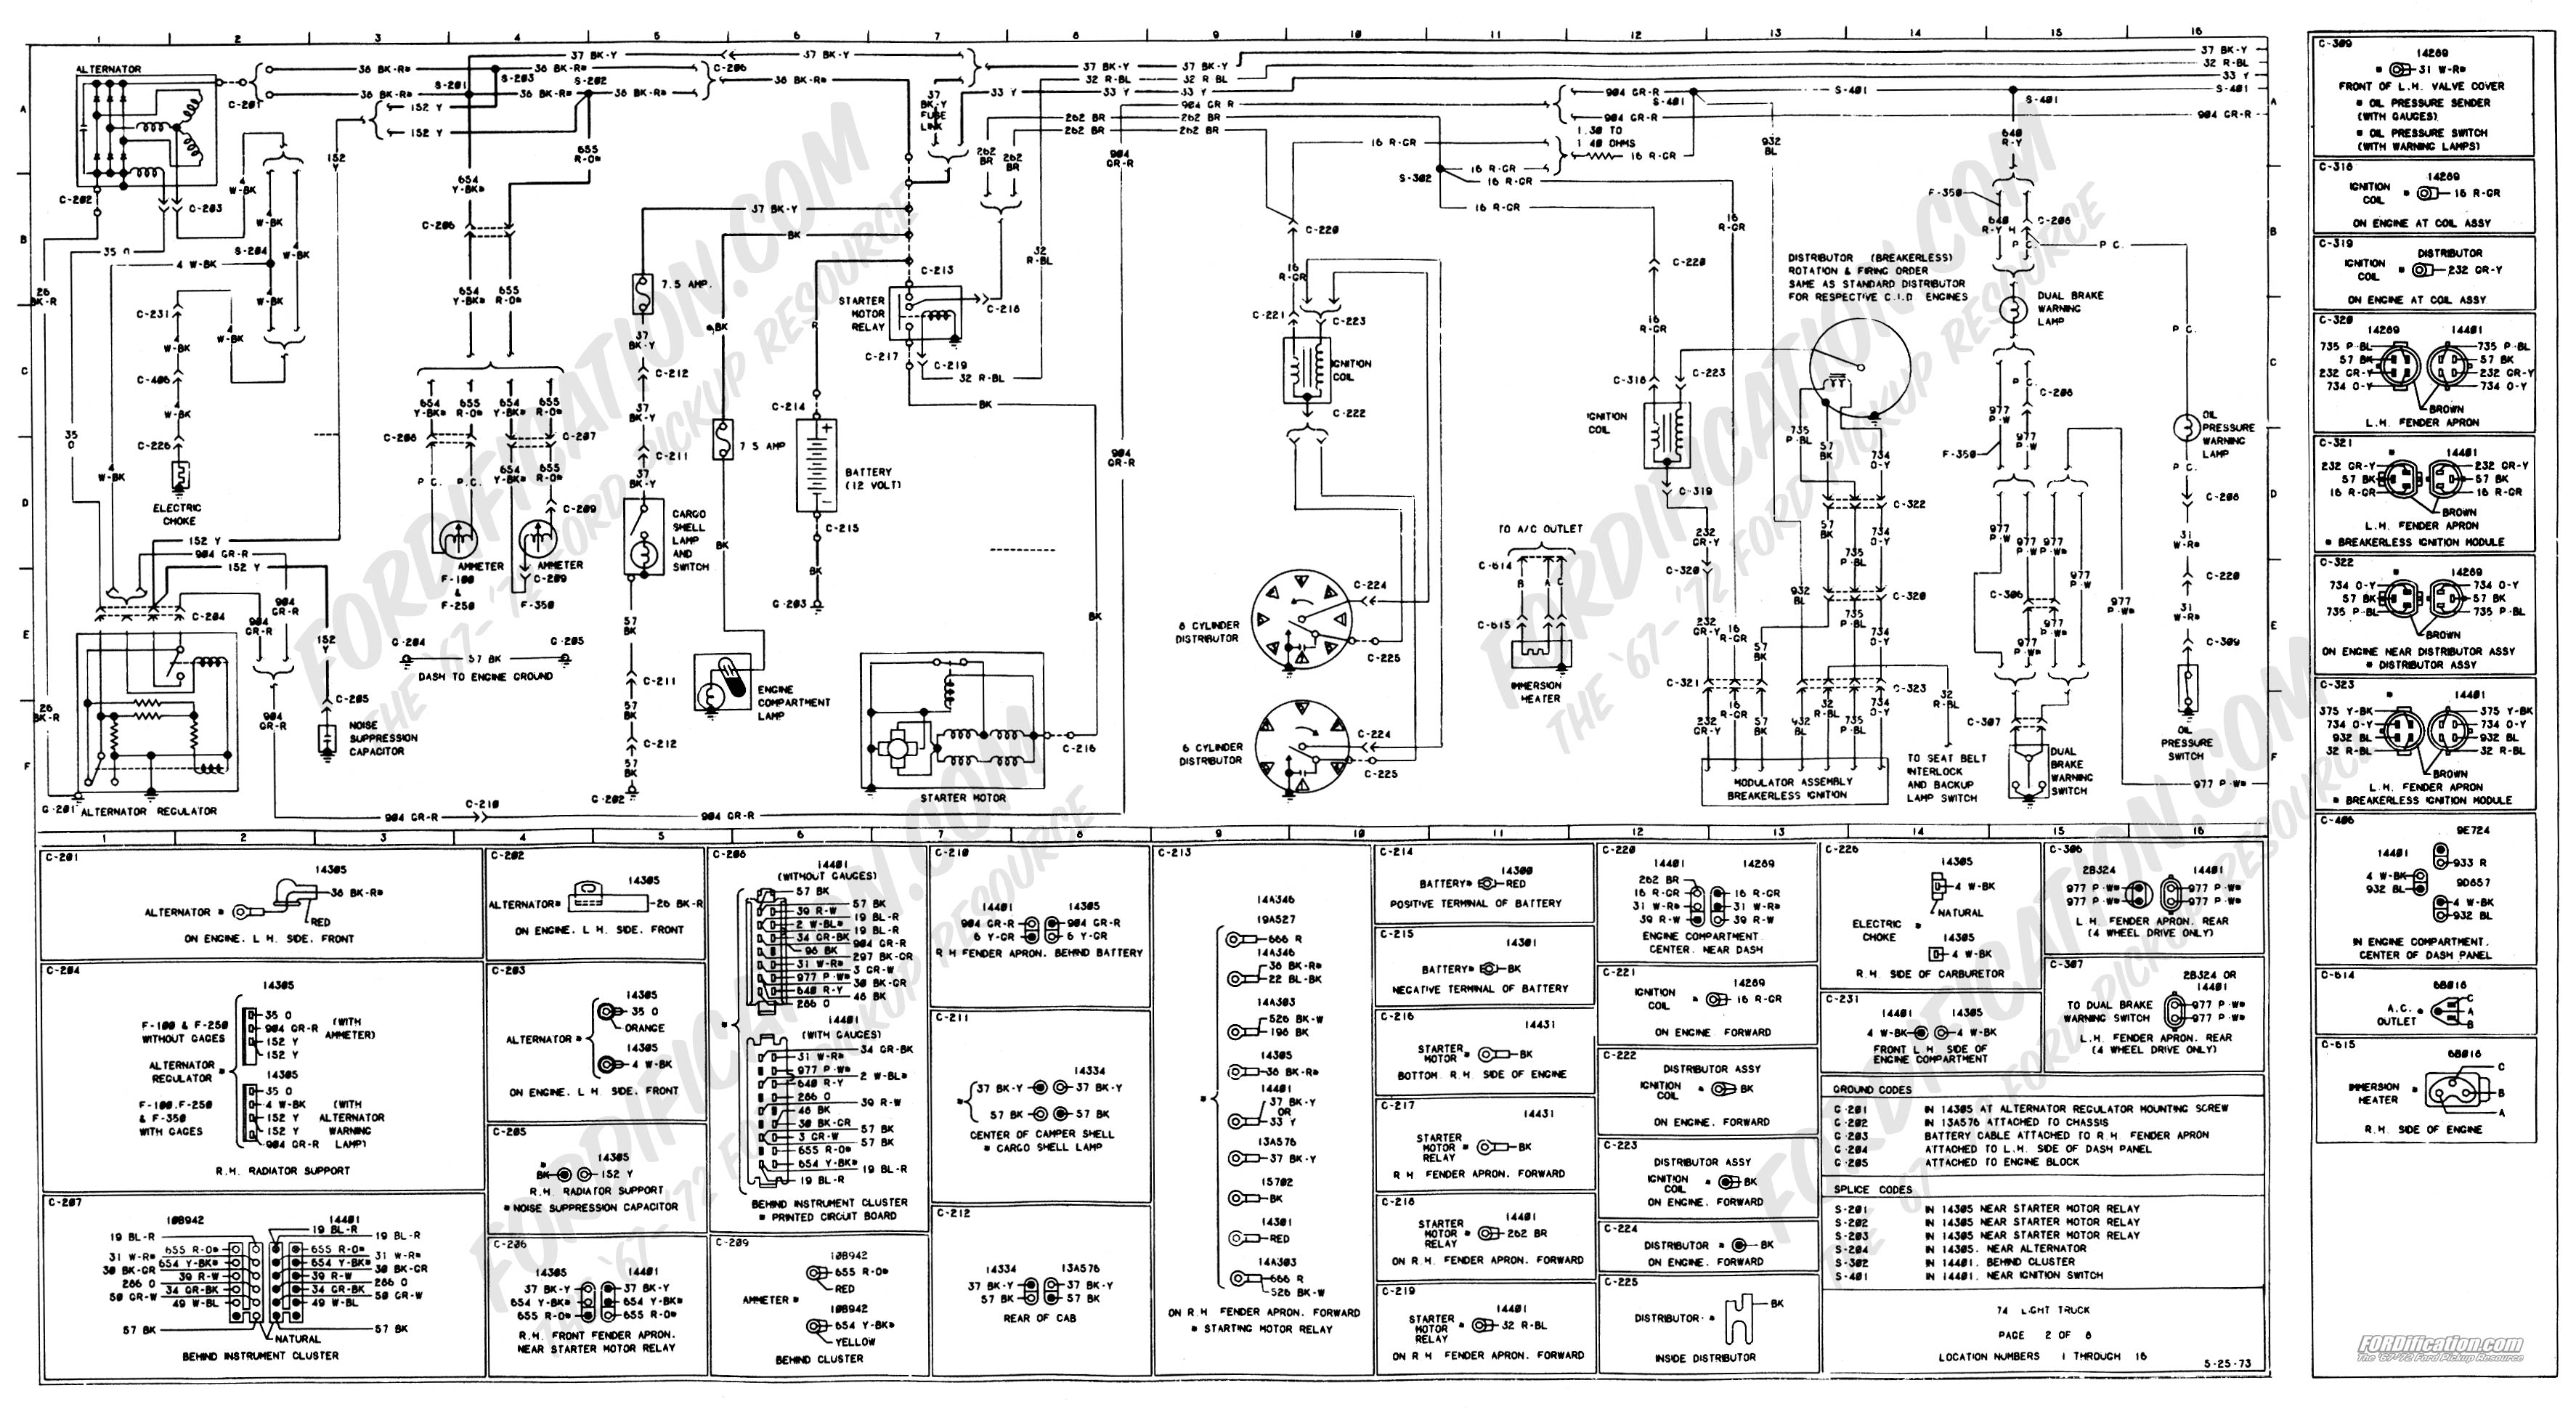 ford f650 ac wiring diagram | wiring diagram  wiring diagram - autoscout24